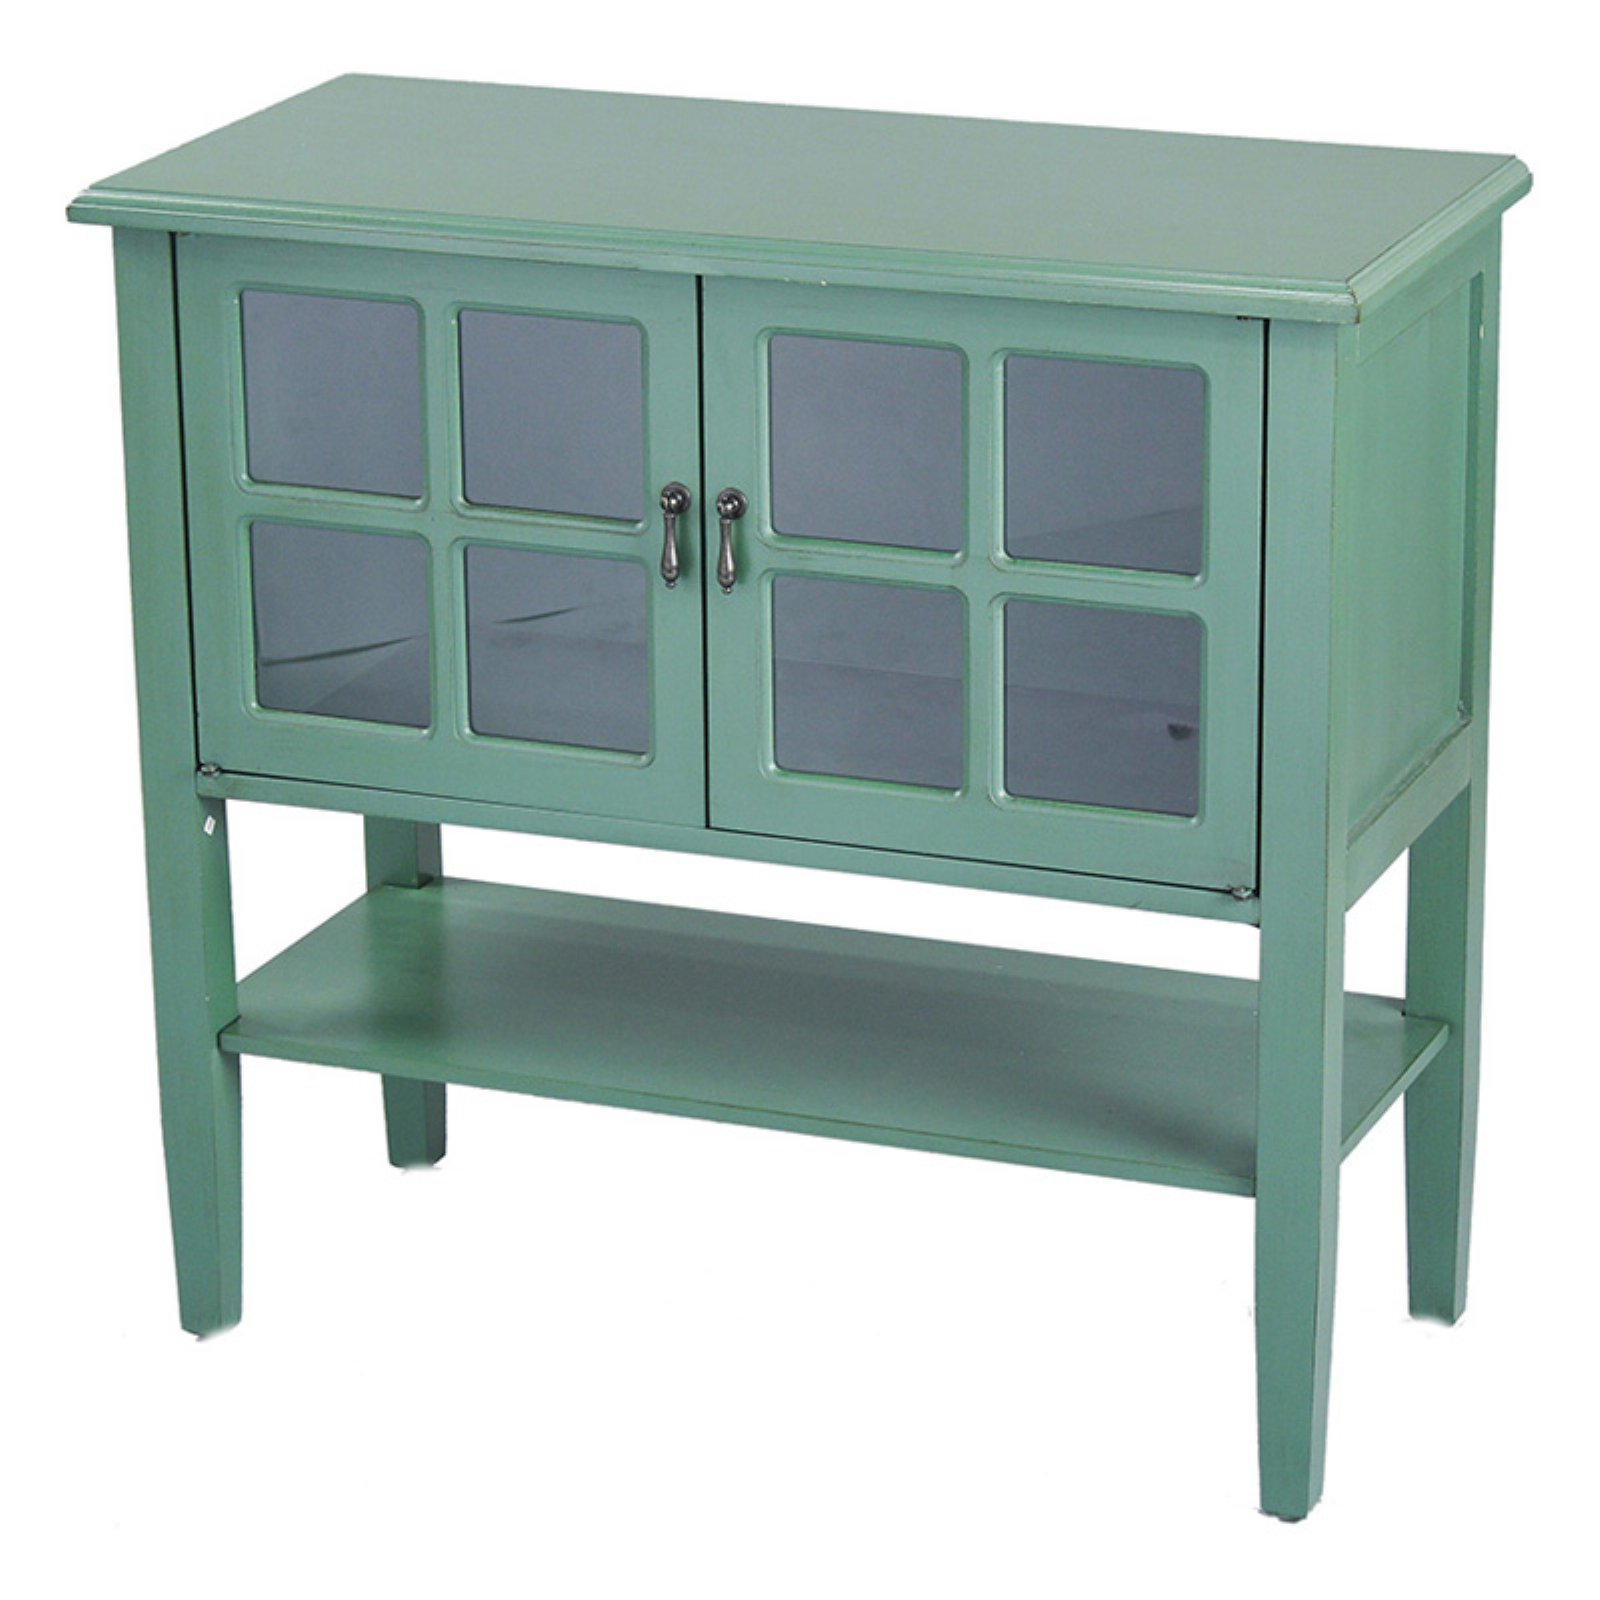 Heather Ann Creations Vivian Paned Glass Console Cabinet